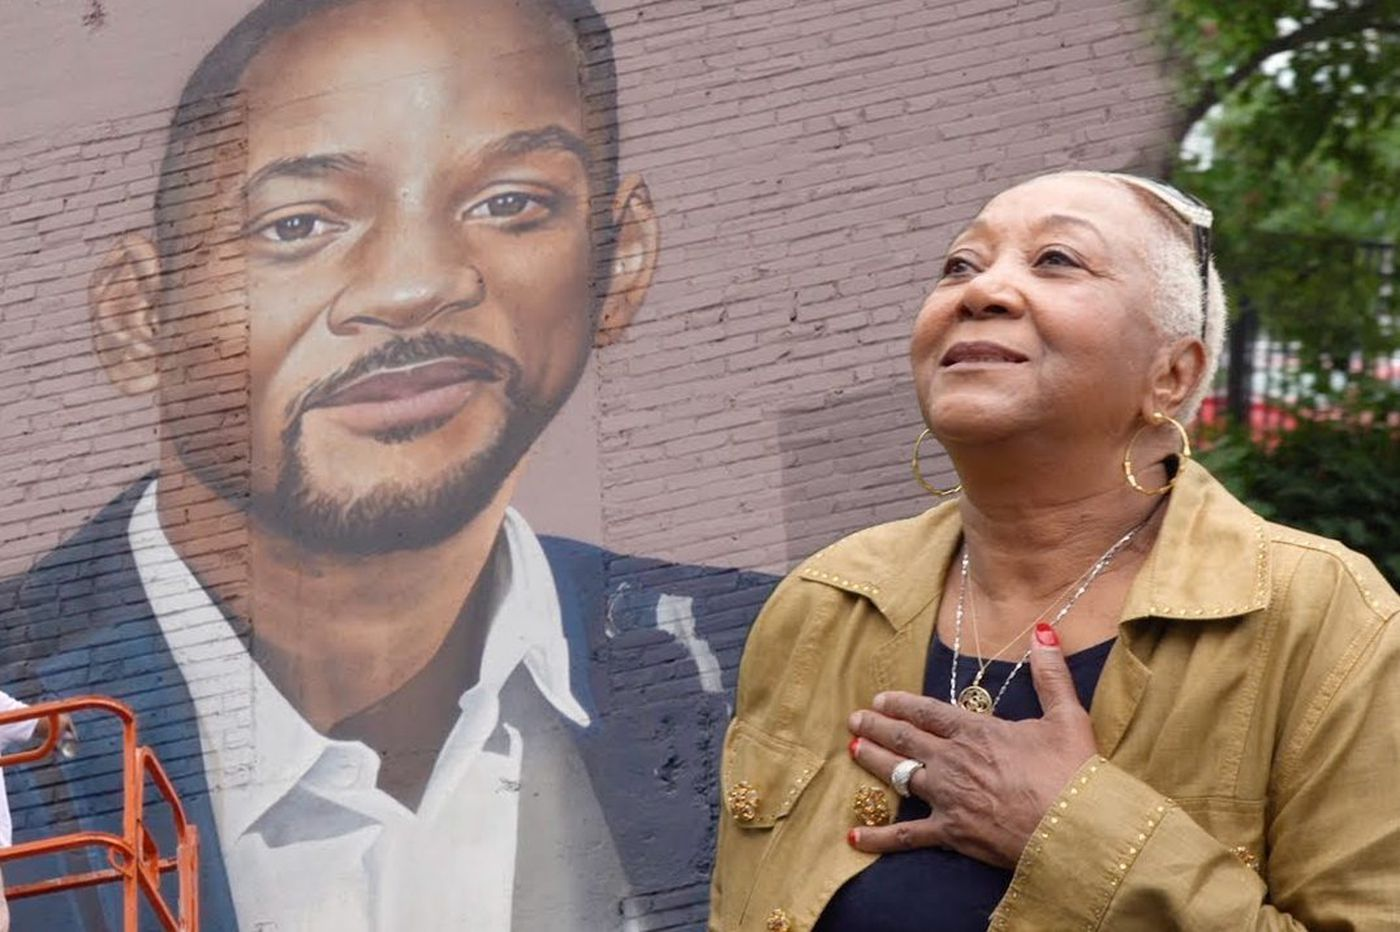 Will Smith responds to West Philly mural: It 'just wrecked me'